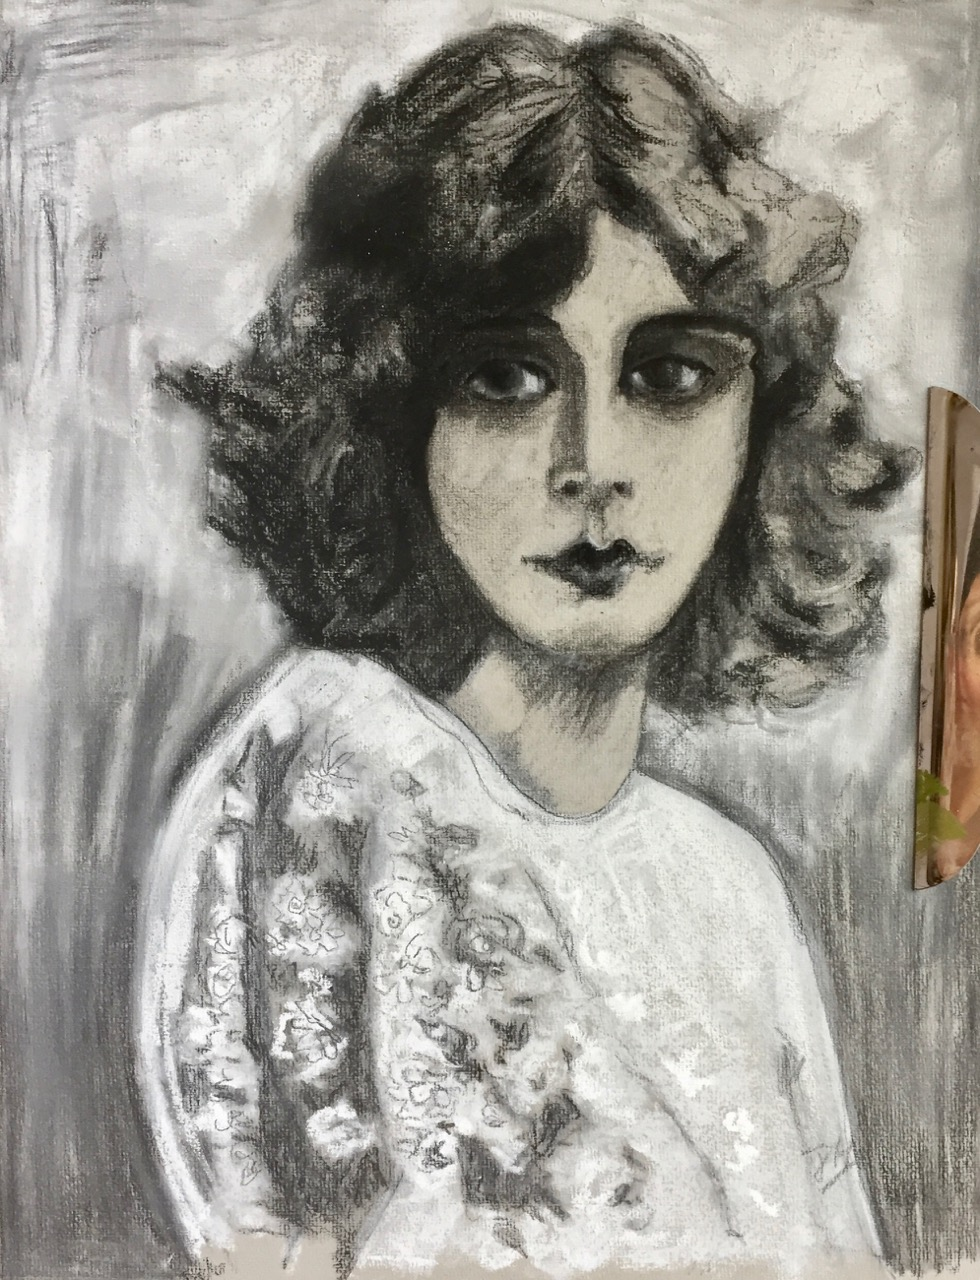 Project 2 - Charcoal Portrait On Coloured Paper - Create an evocative piece using charcoal.  Enjoy blending layers of charcoal and building up tone, form and line in order to give depth, emotion and realism to your piece.  You are going to be astounded with this process!